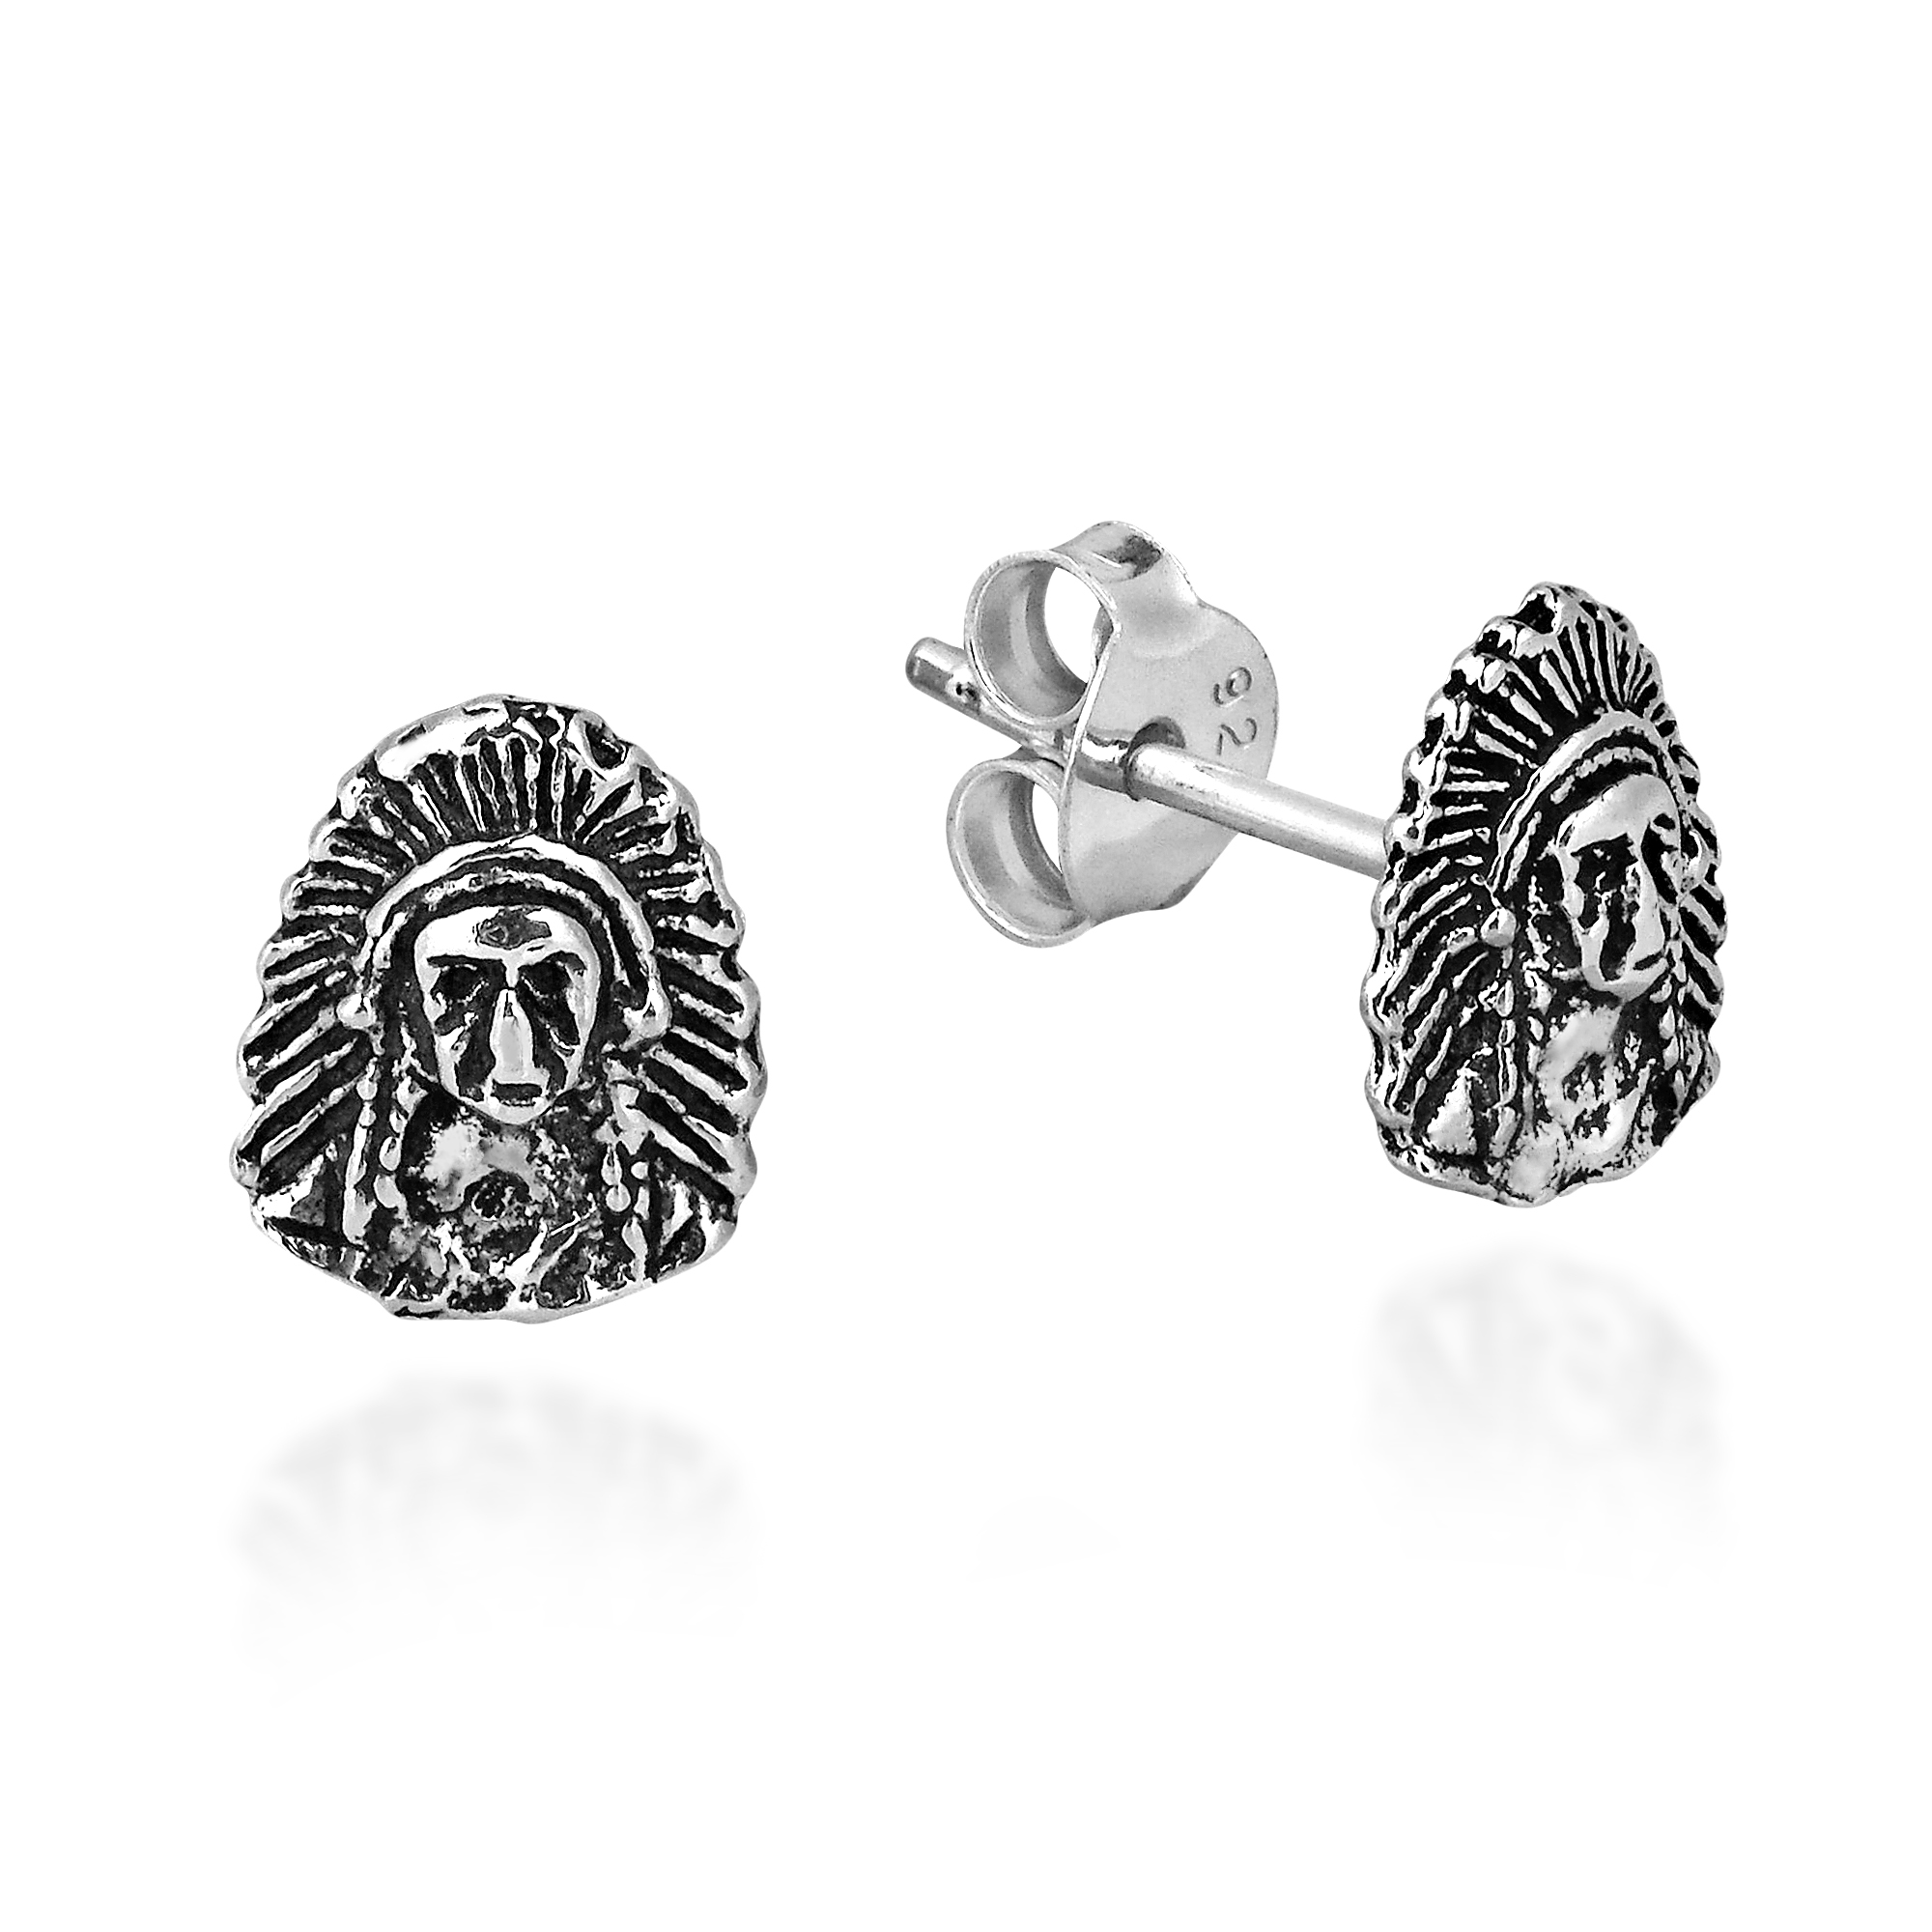 Expertly Crafted In Sterling Silver The Earring Feature An Oxidized Finish For